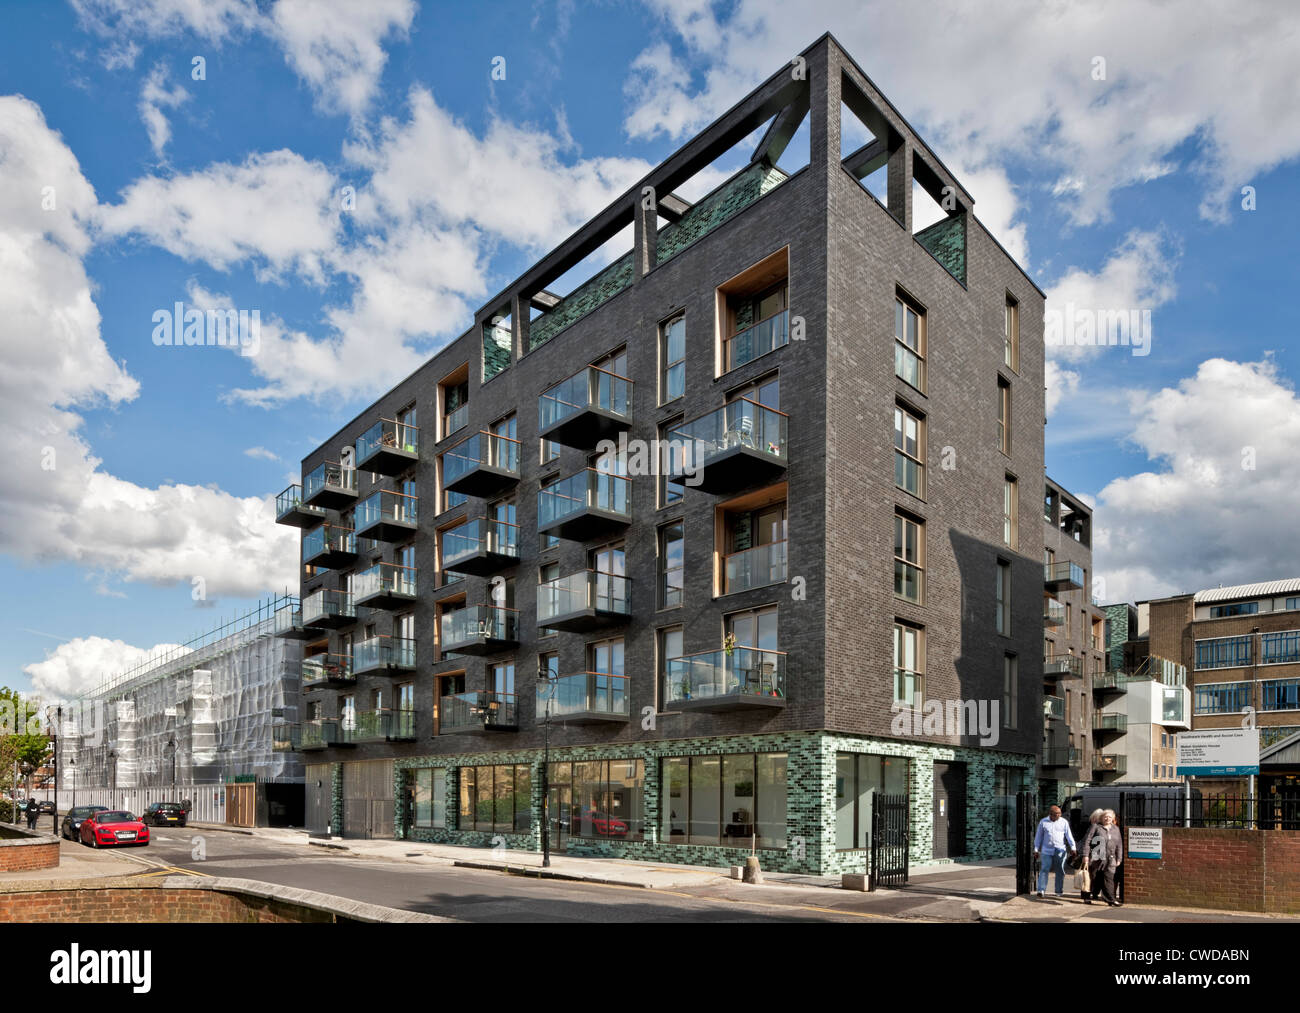 Larnaca Works apartments and commercial space in Bermondsey, London. Stock Photo